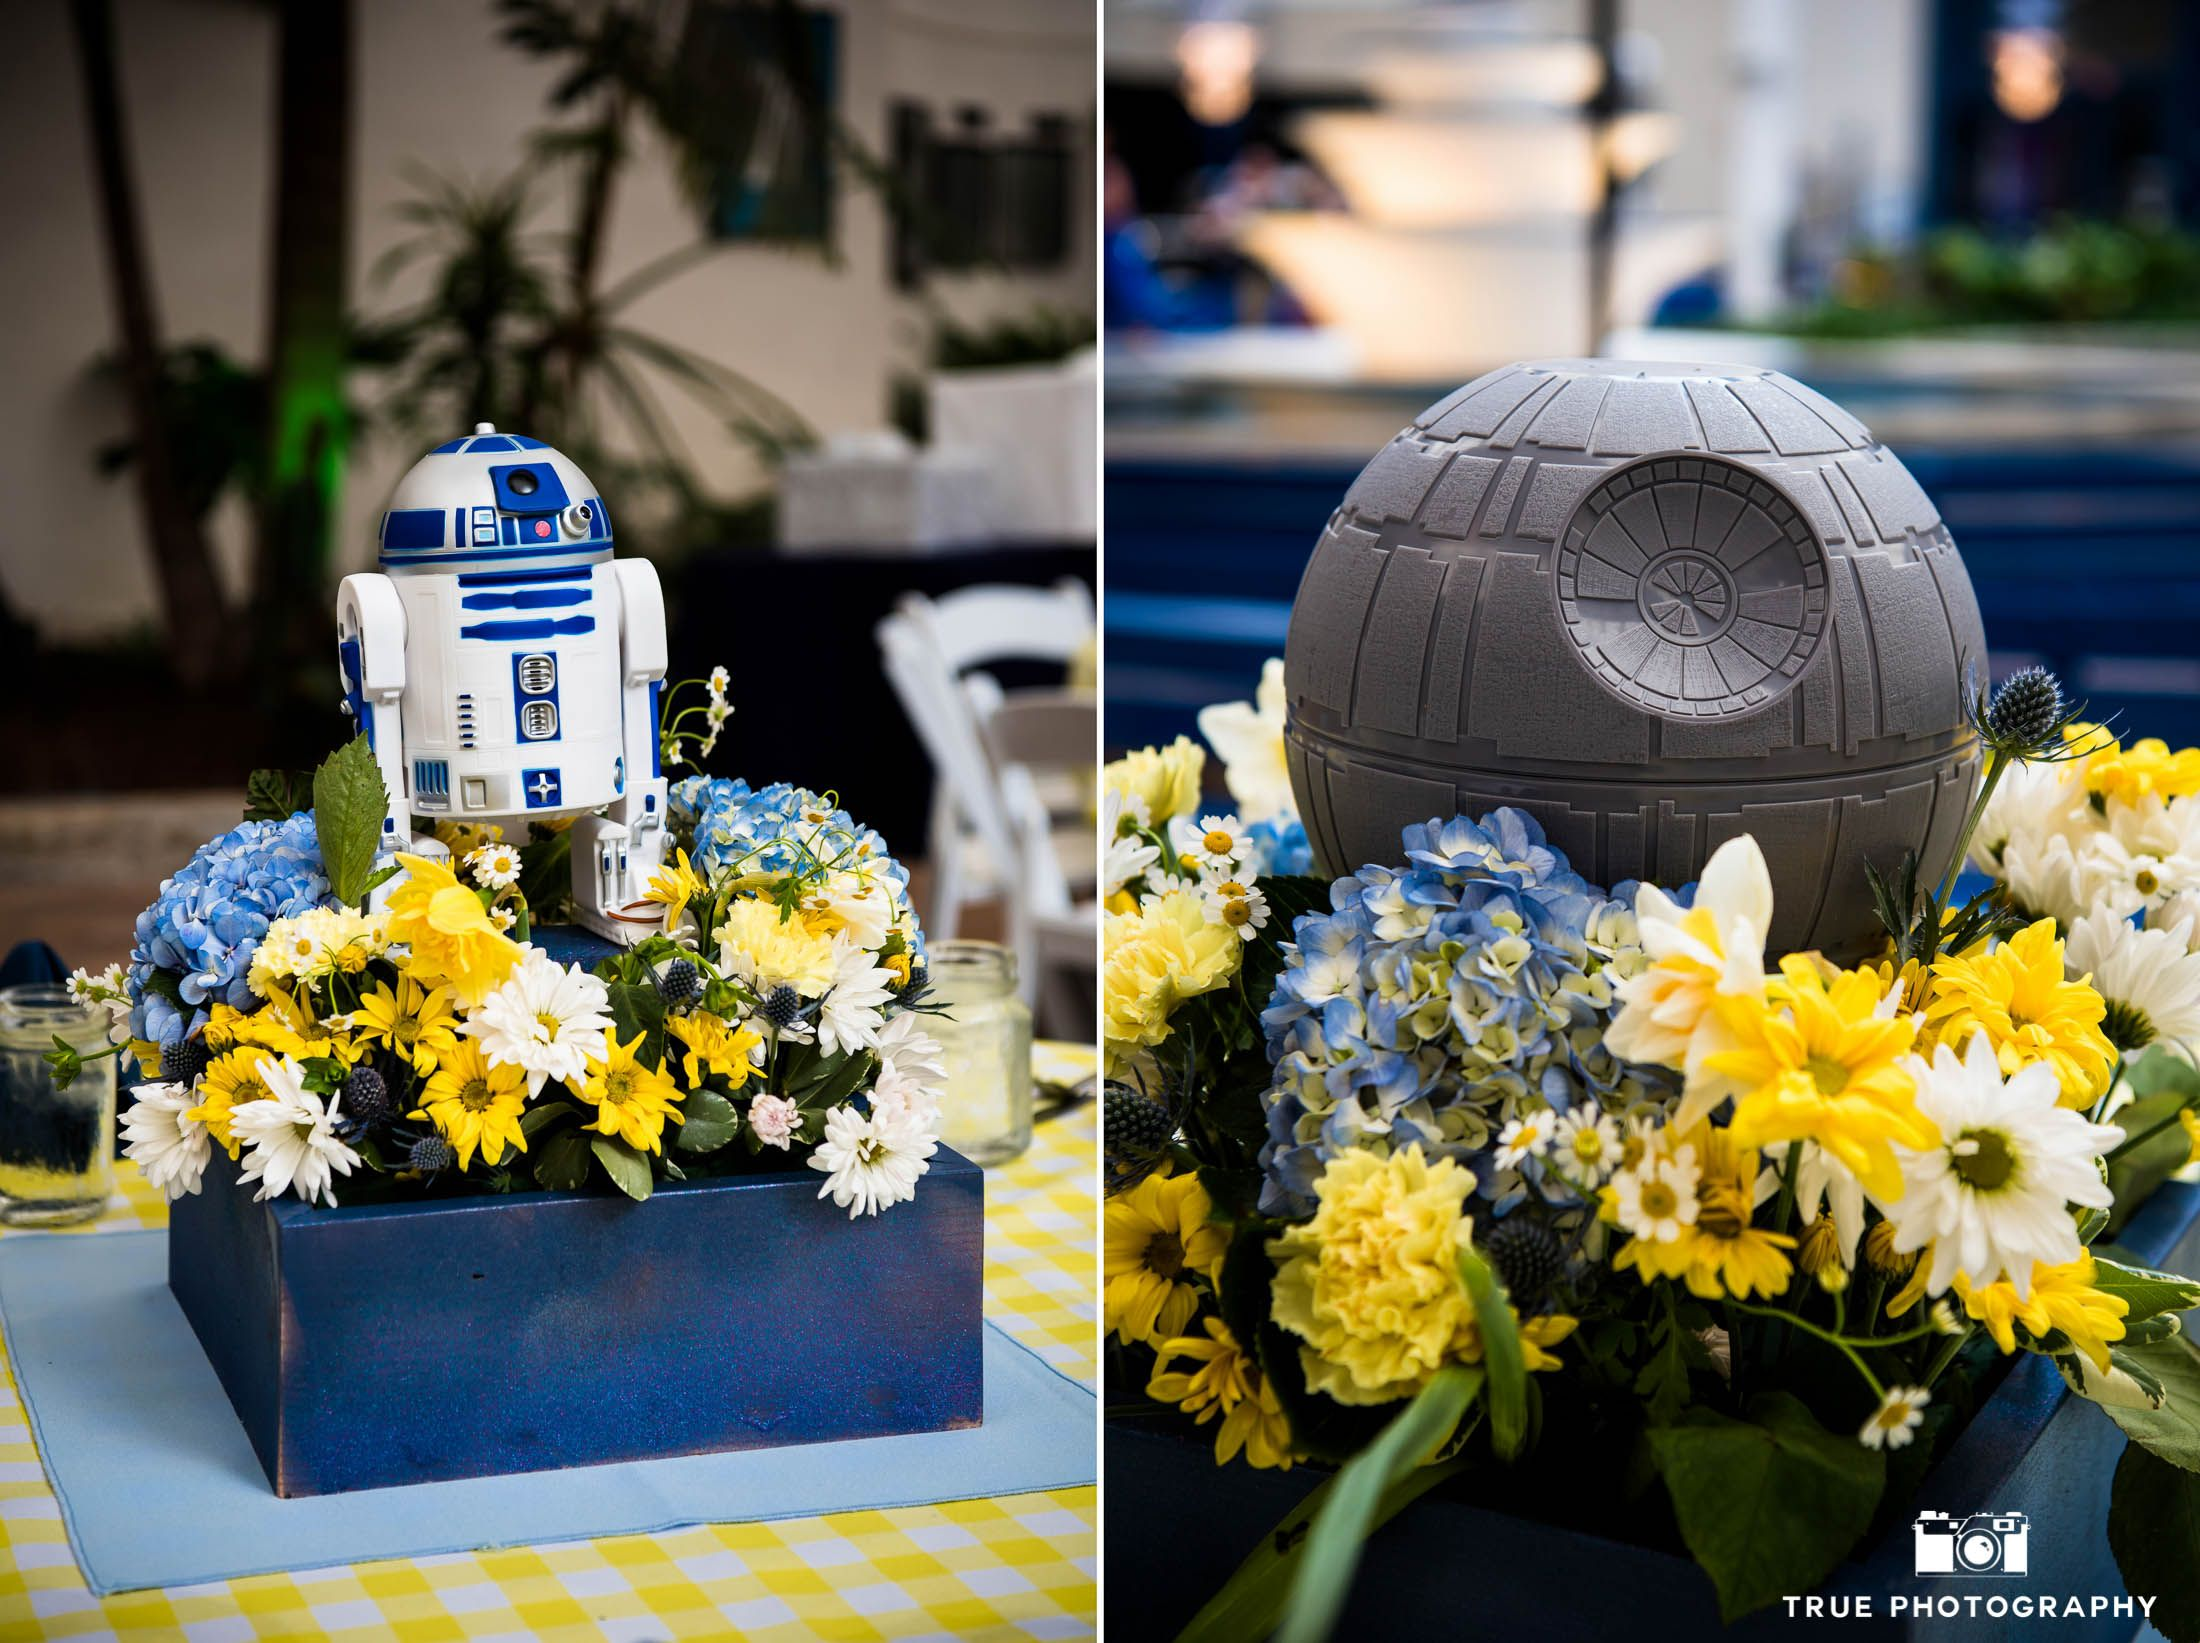 Stars Wars Themed Centerpieces During Reception At Air And Space